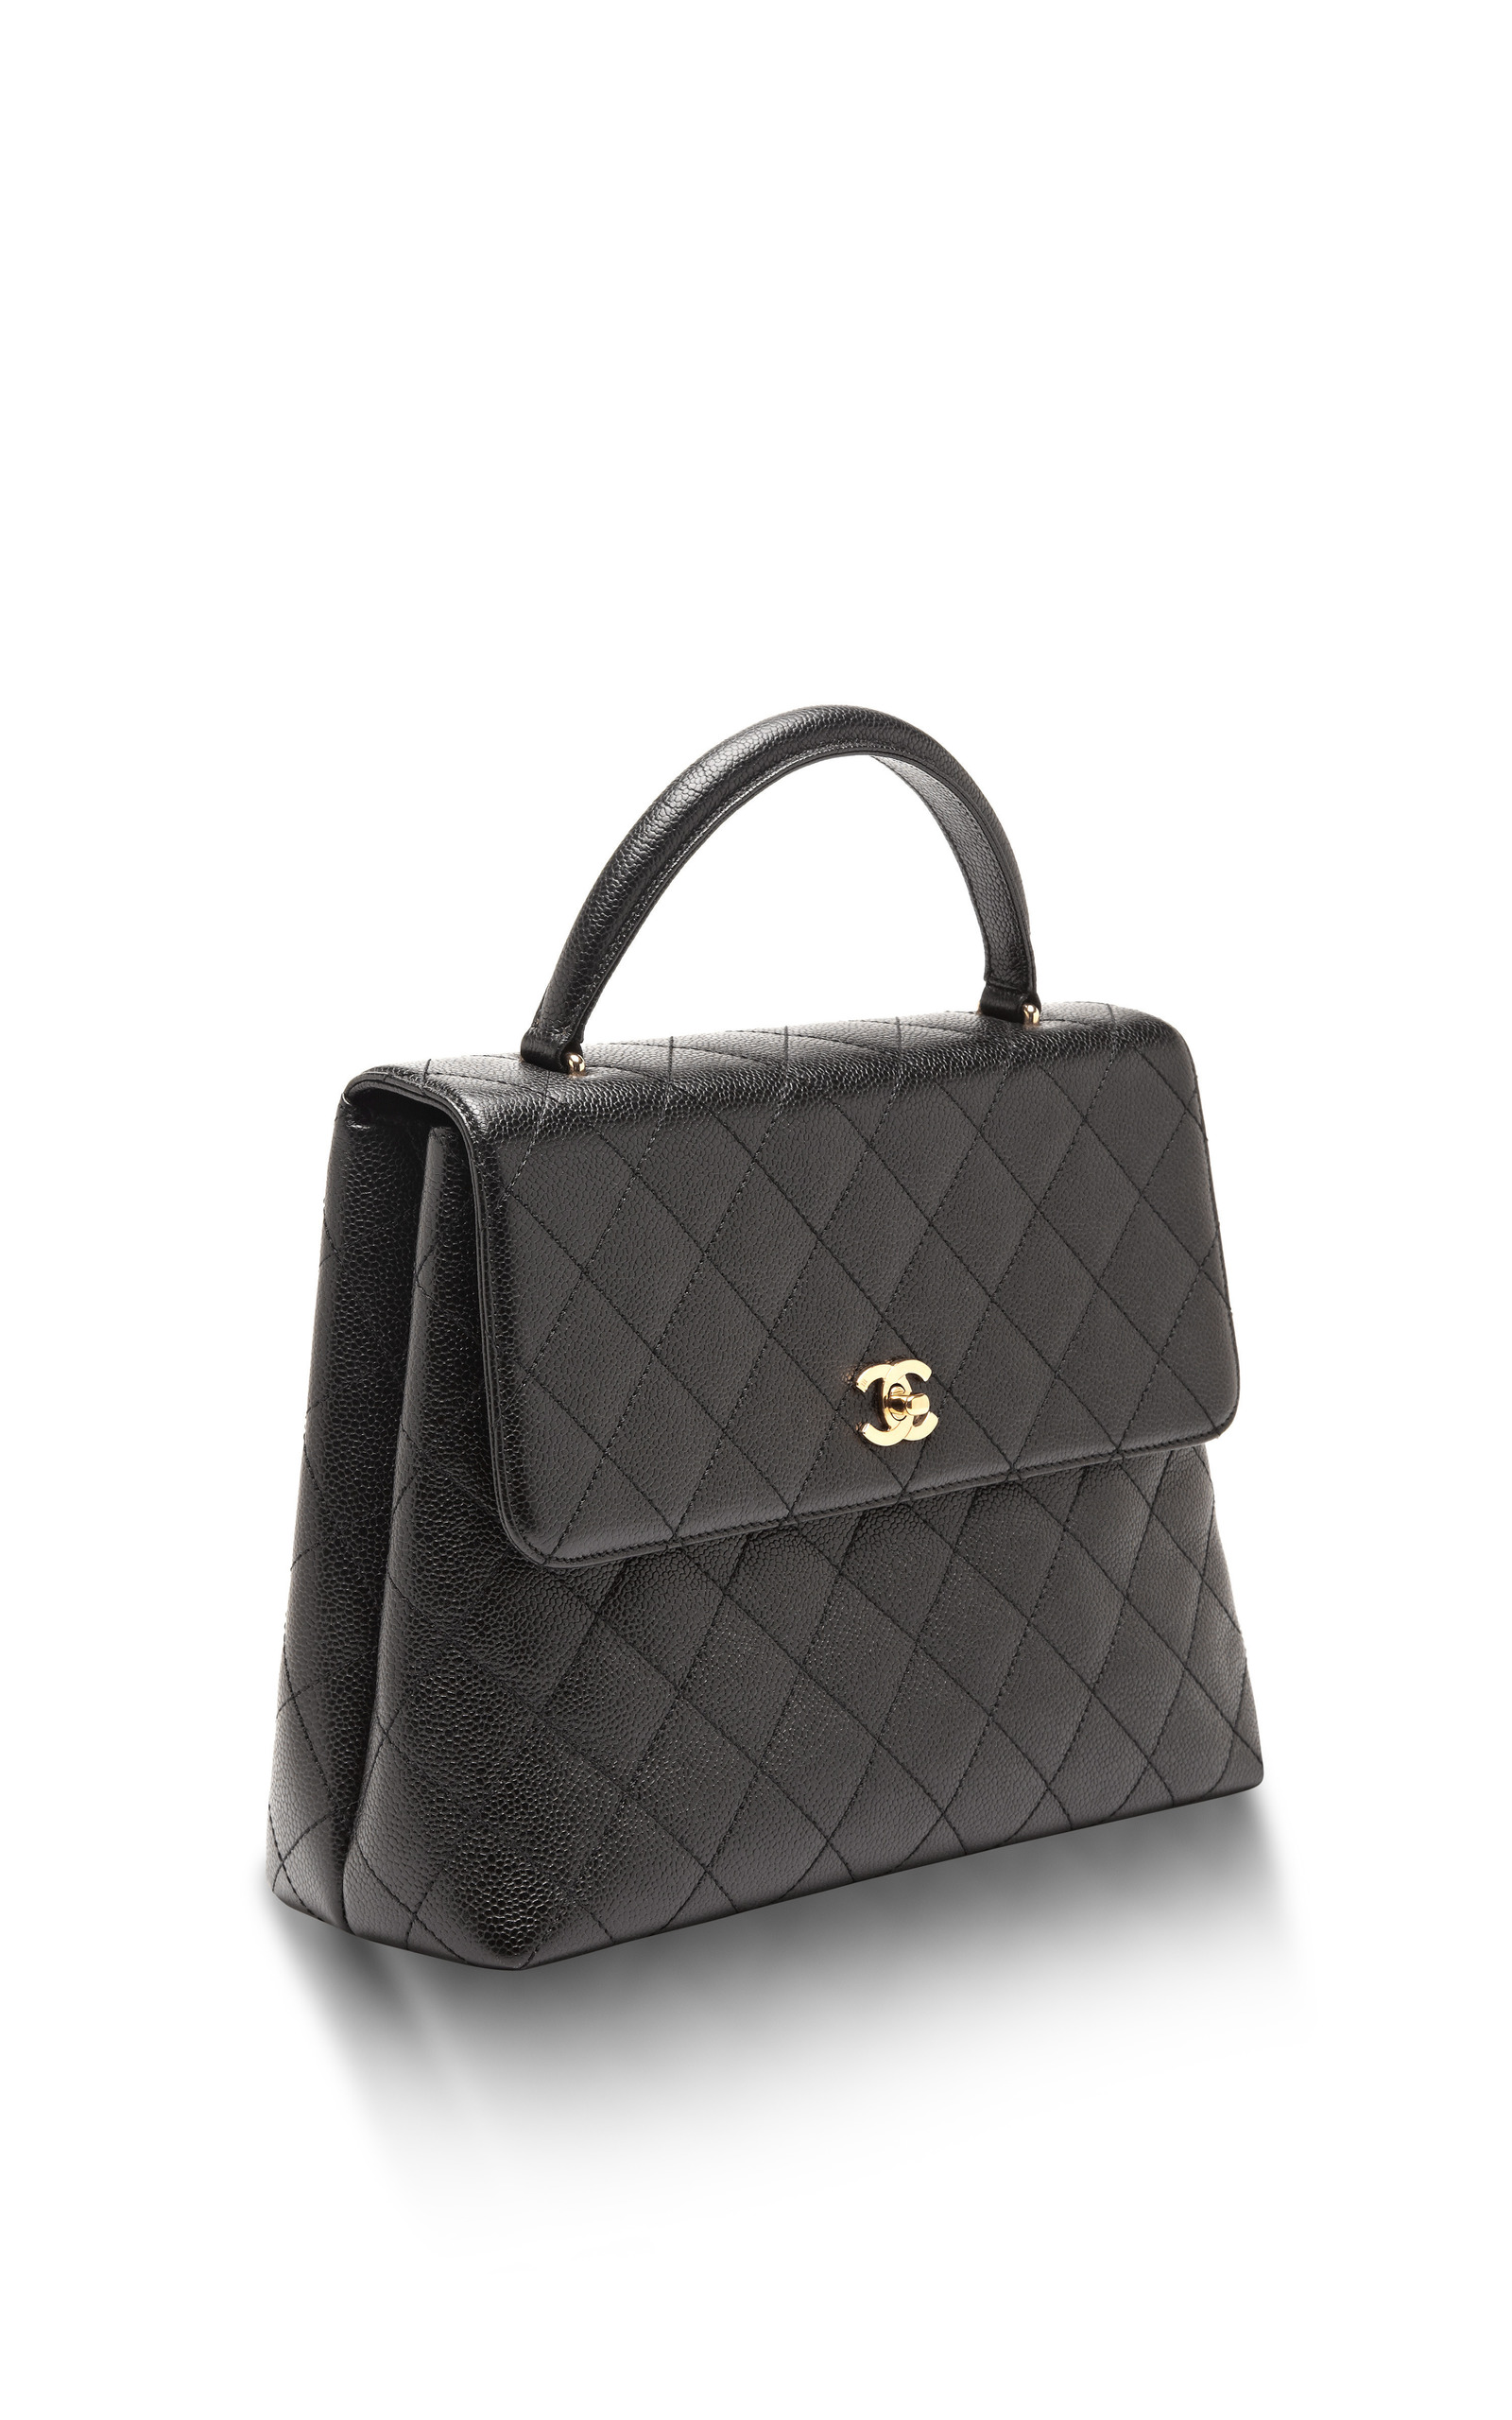 de785b815300 Collectible JacketsVintage Chanel Black Caviar Kelly Bag. CLOSE. Loading